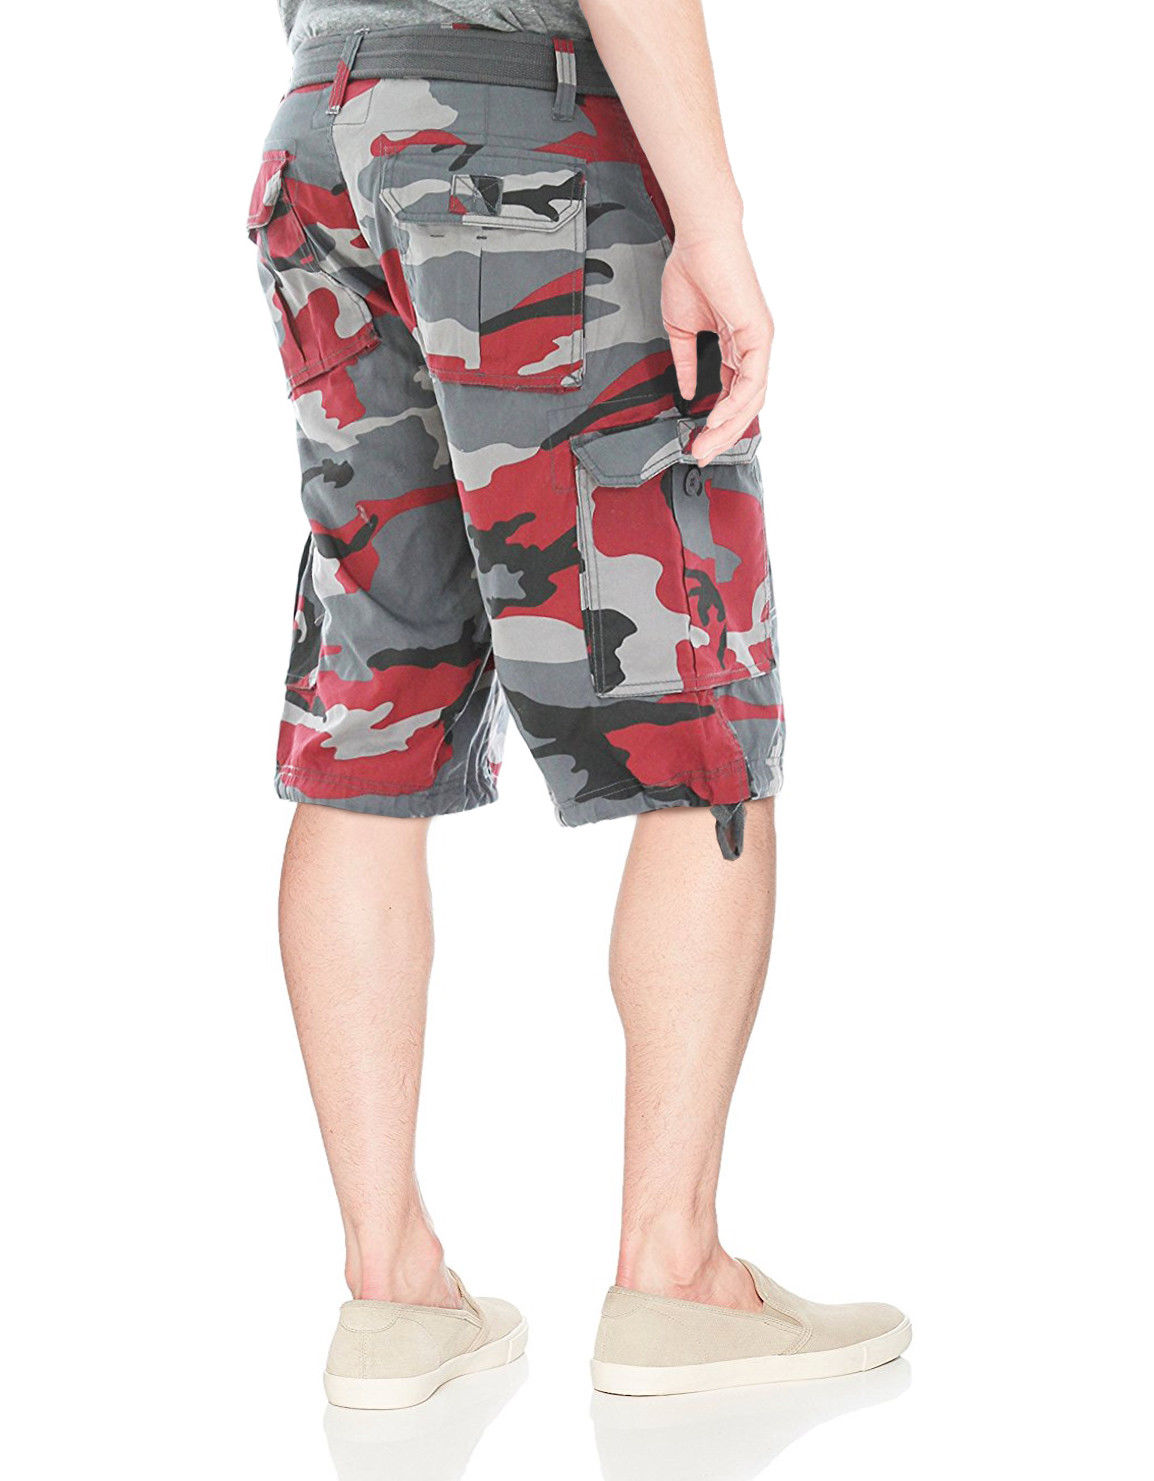 Men-039-s-Tactical-Combat-Military-Army-Cotton-Twill-Camo-Cargo-Shorts-With-Belt thumbnail 15